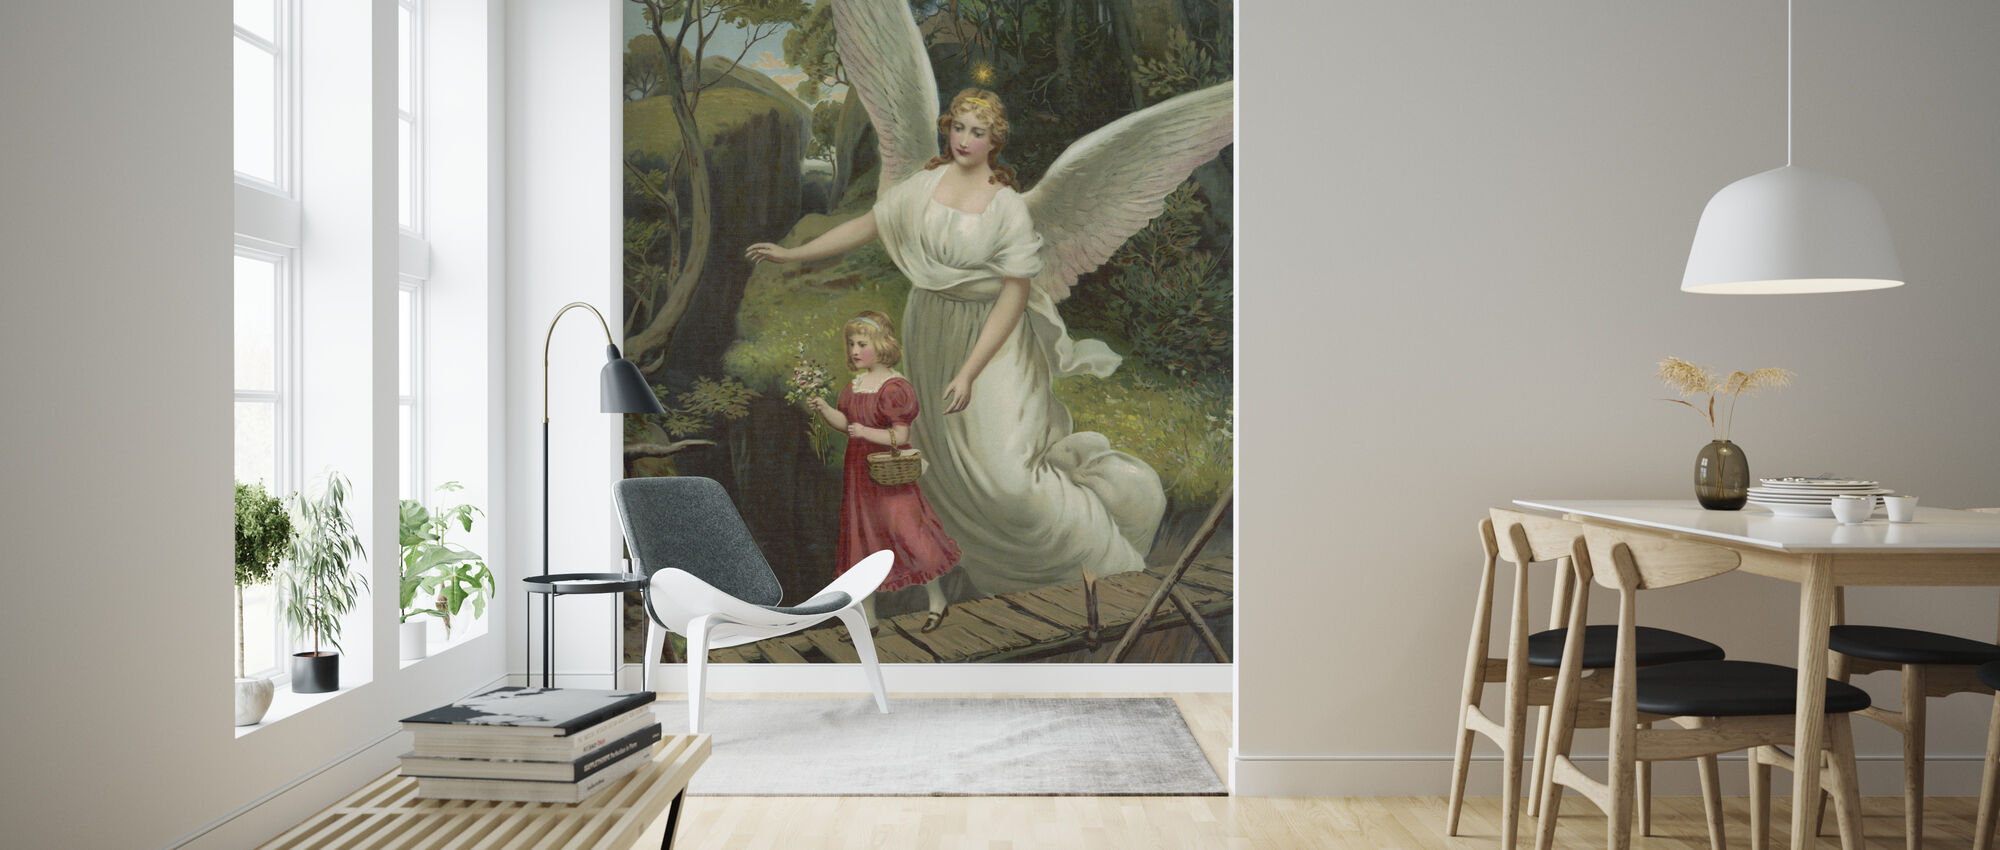 Guardian Angel - Wallpaper - Living Room